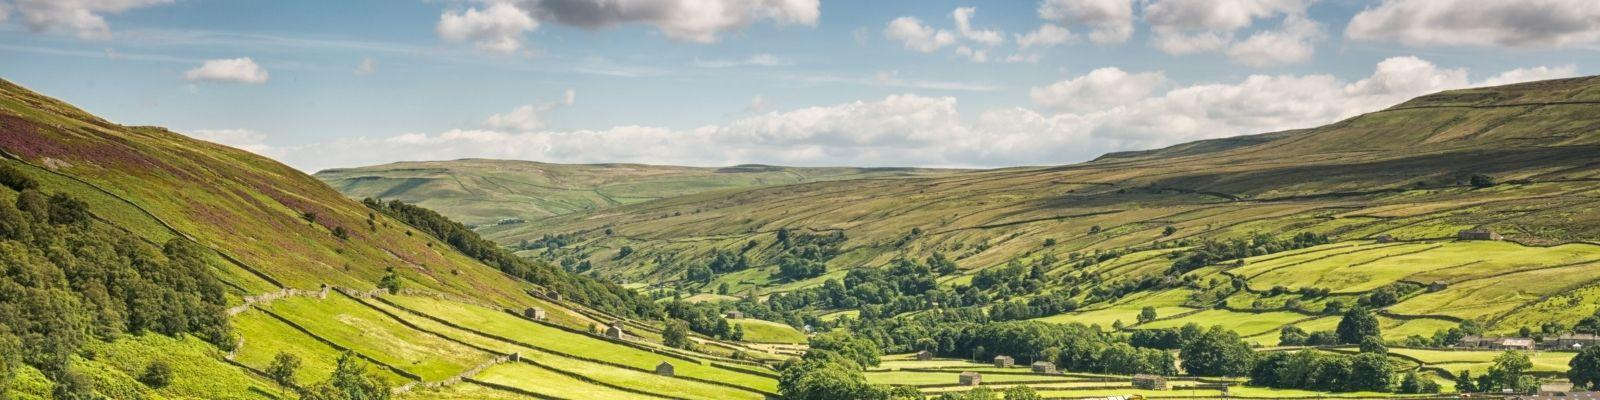 Swaledale in the Yorkshire Dales National Park, England.